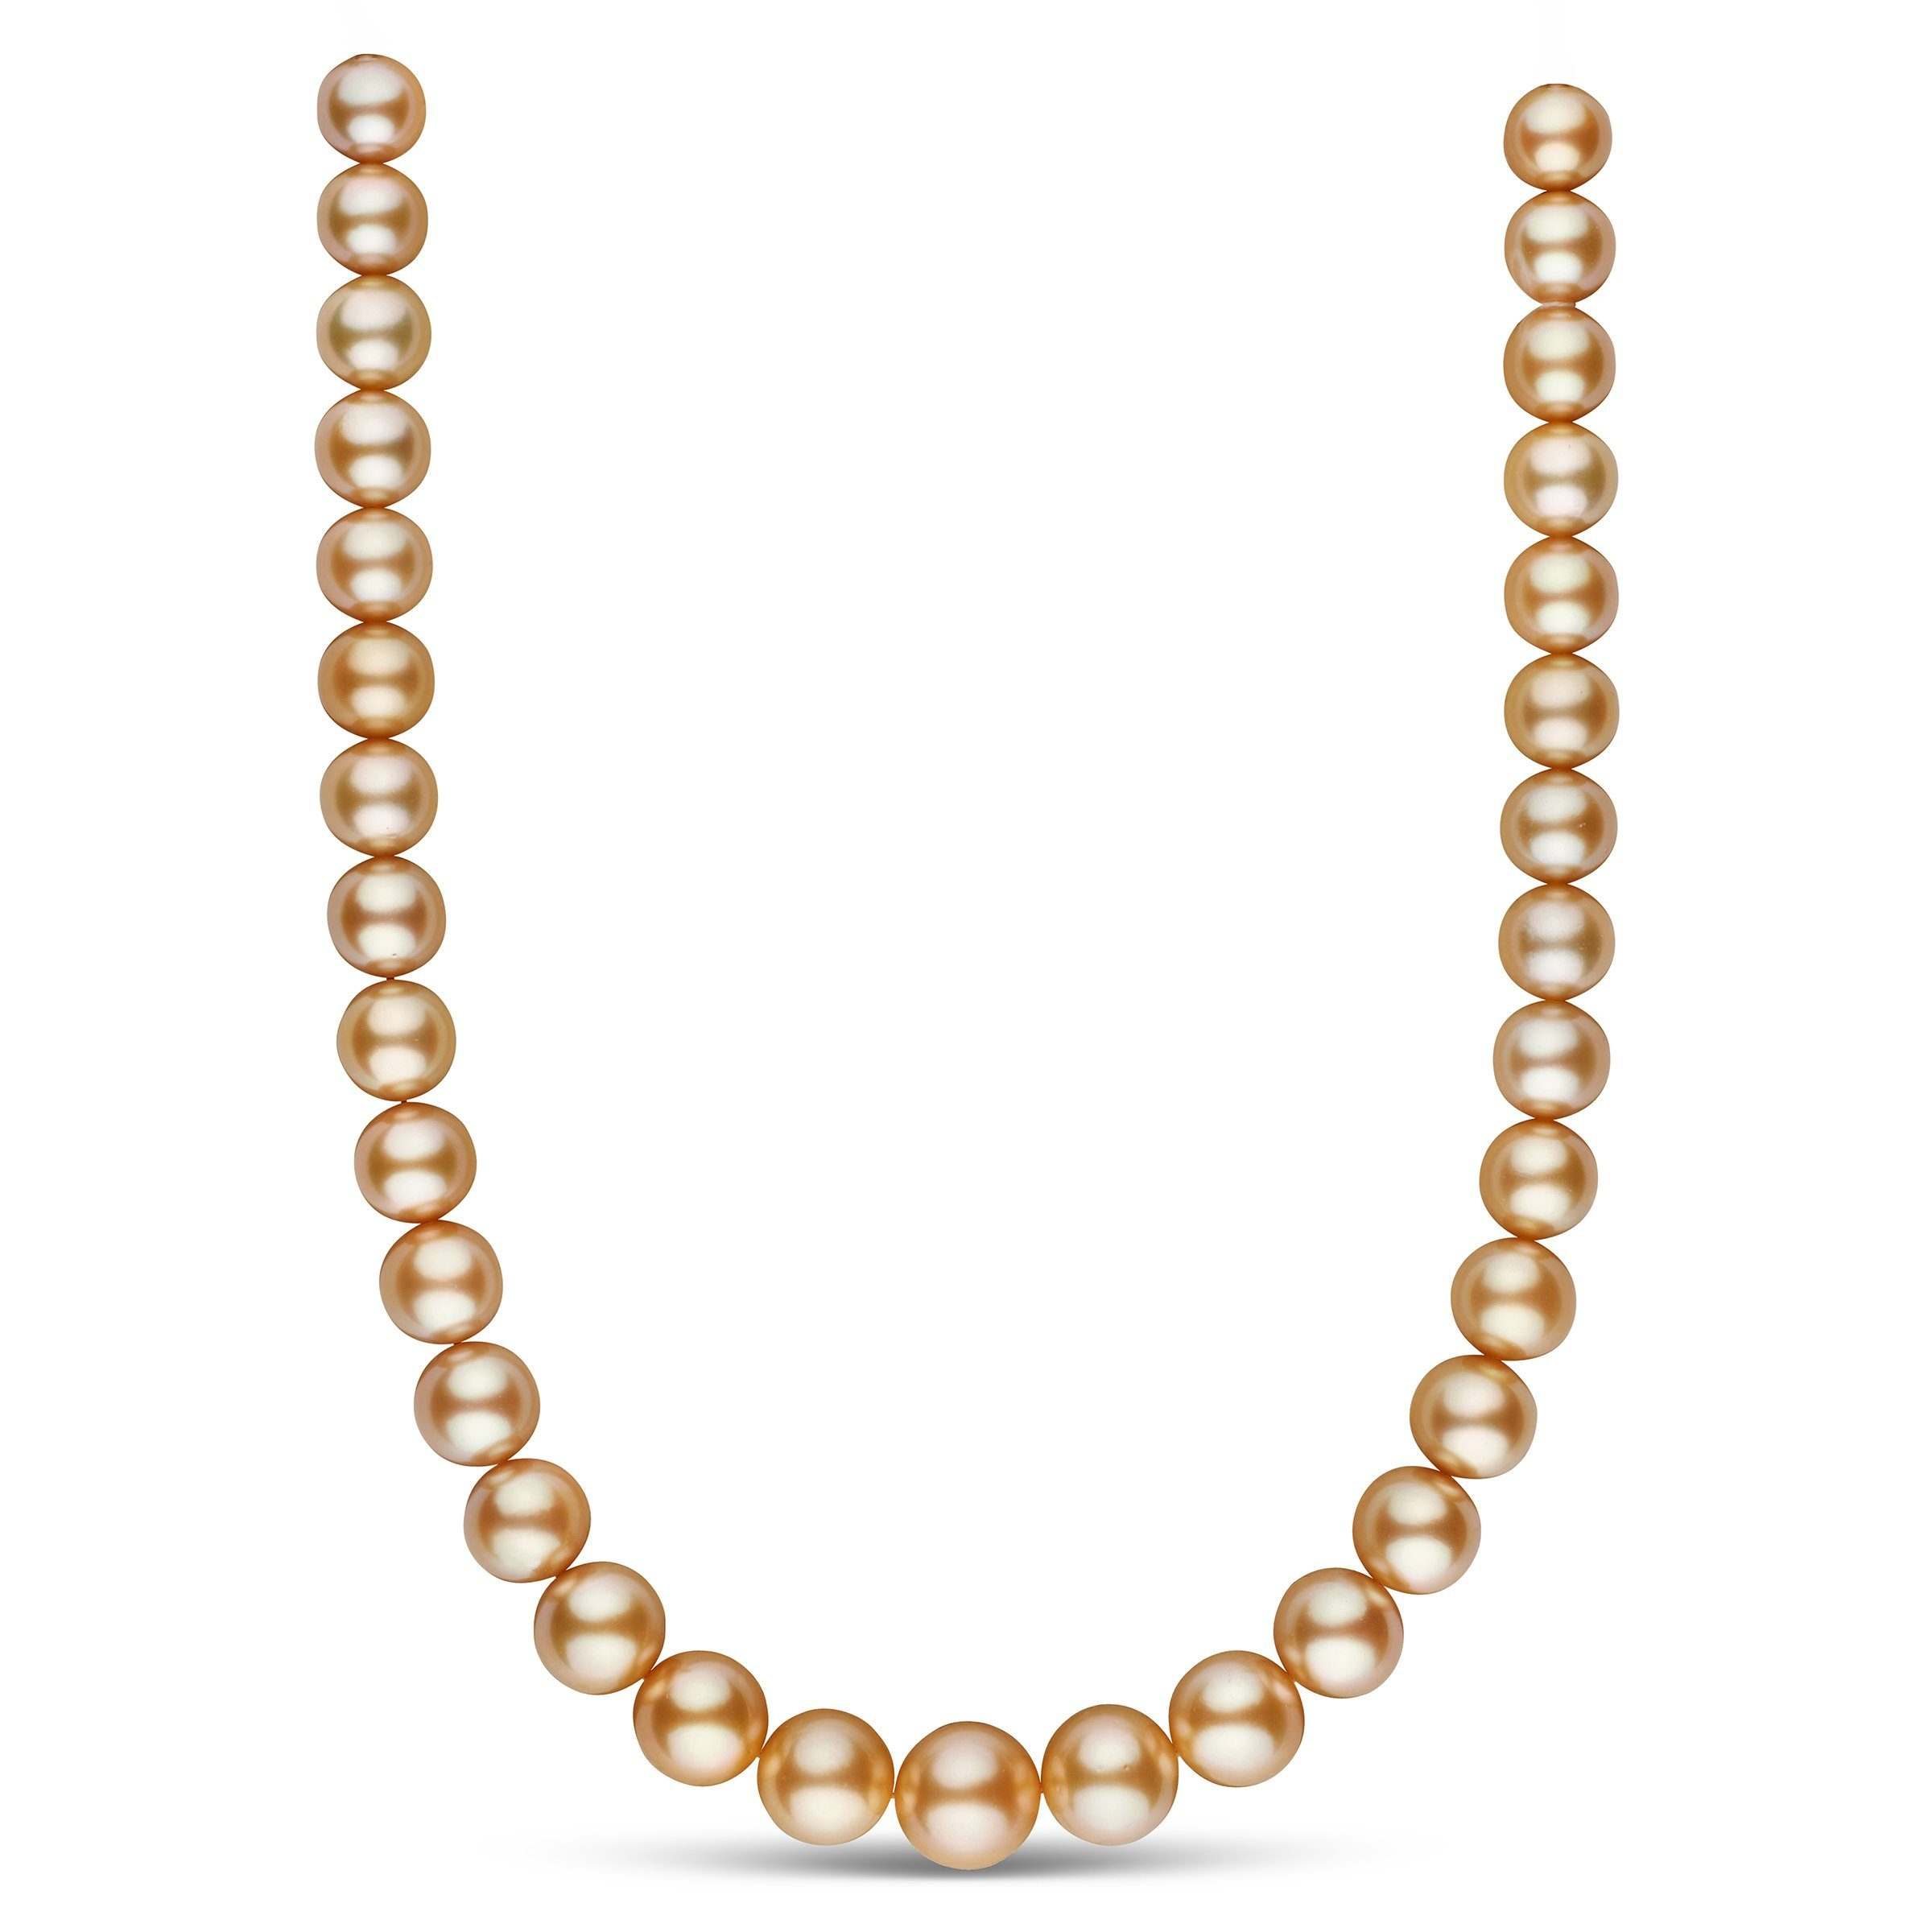 11.0-14.5 mm AA+/AAA Golden South Sea Round Pearl Necklace